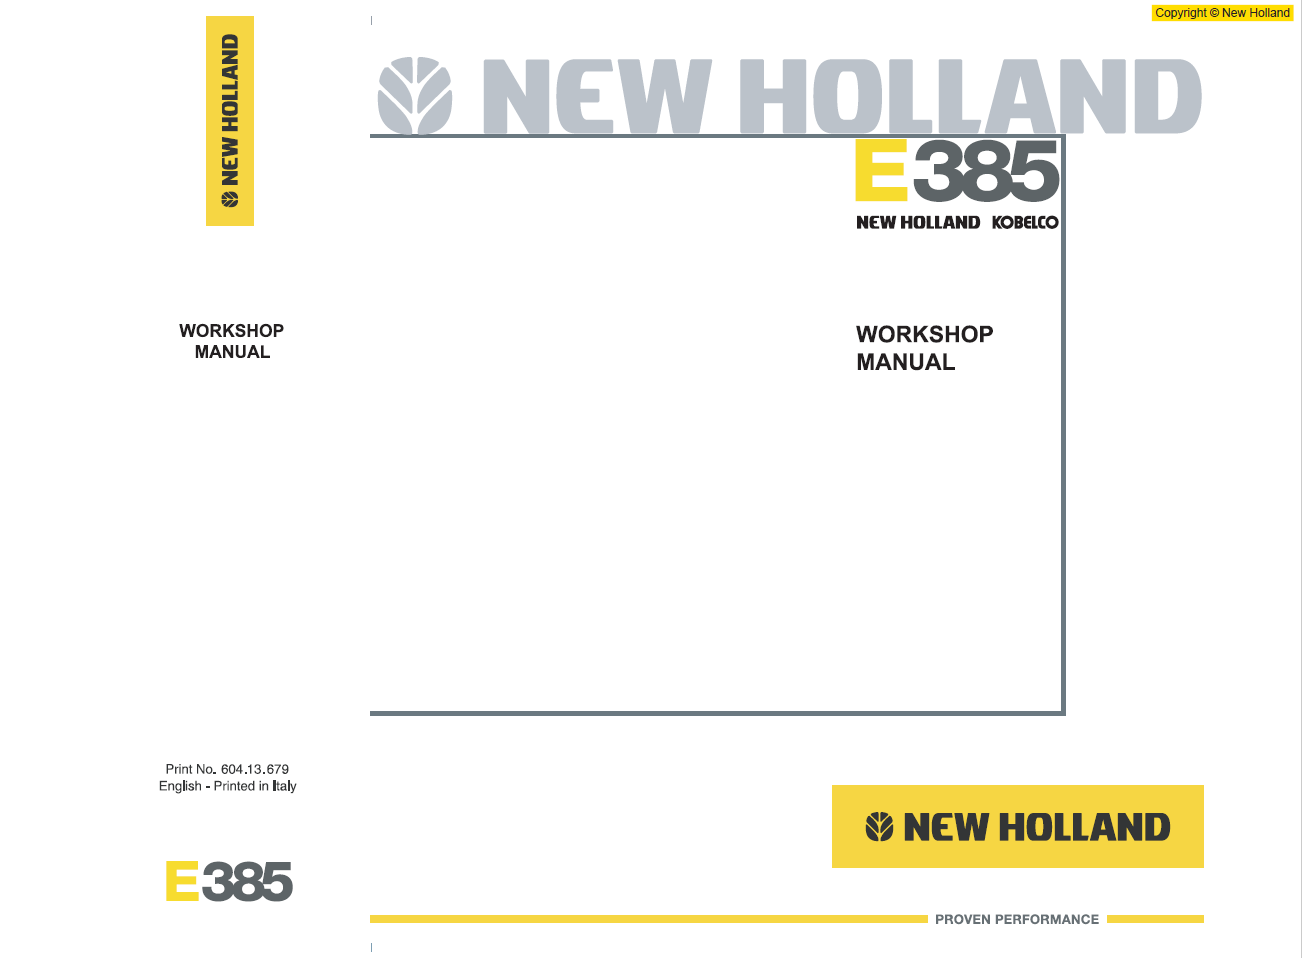 New Holland Construction Crawler Excavator Workshop Manual E385 Tier 3  604 13 679 00 English